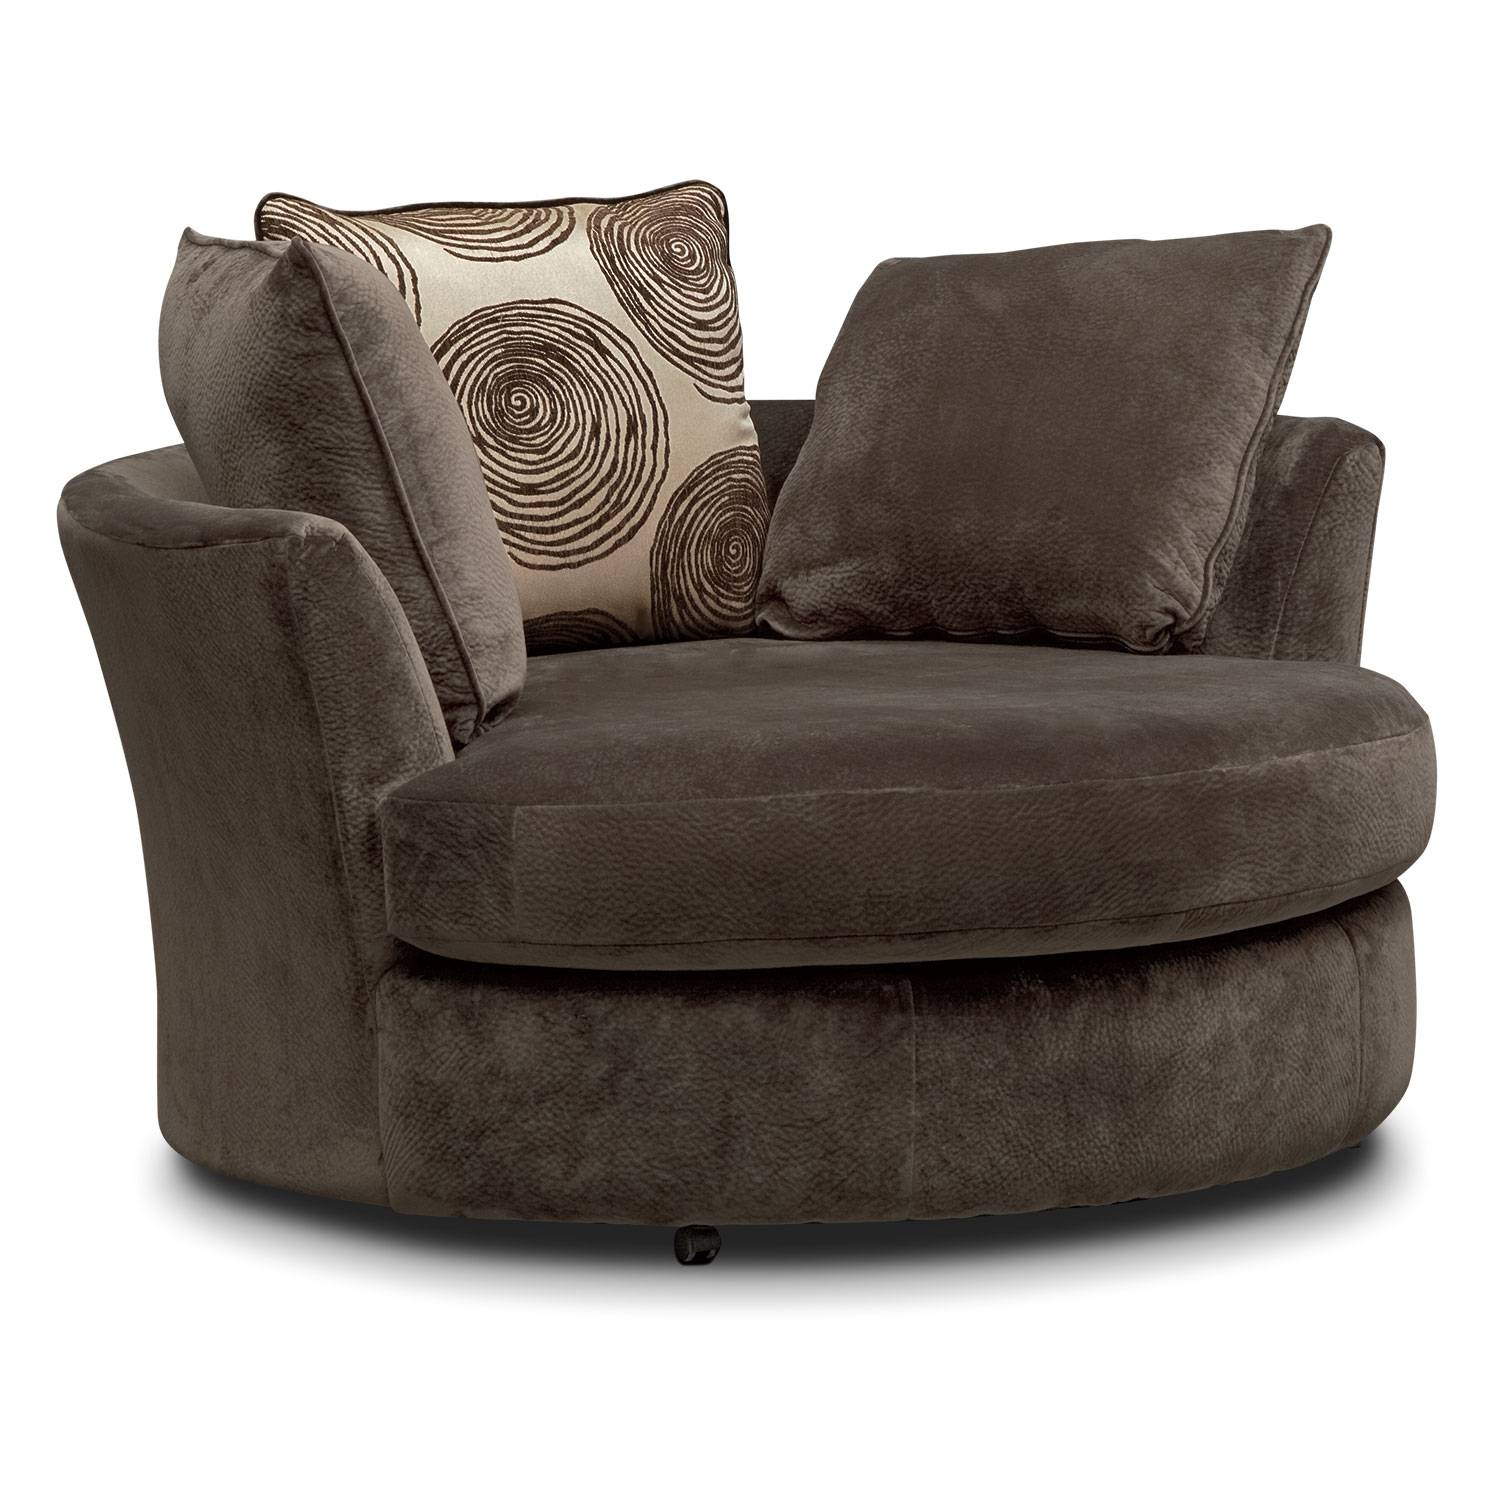 Cordelle Sofa And Swivel Chair Set - Chocolate | Value City Furniture with Swivel Sofa Chairs (Image 3 of 30)